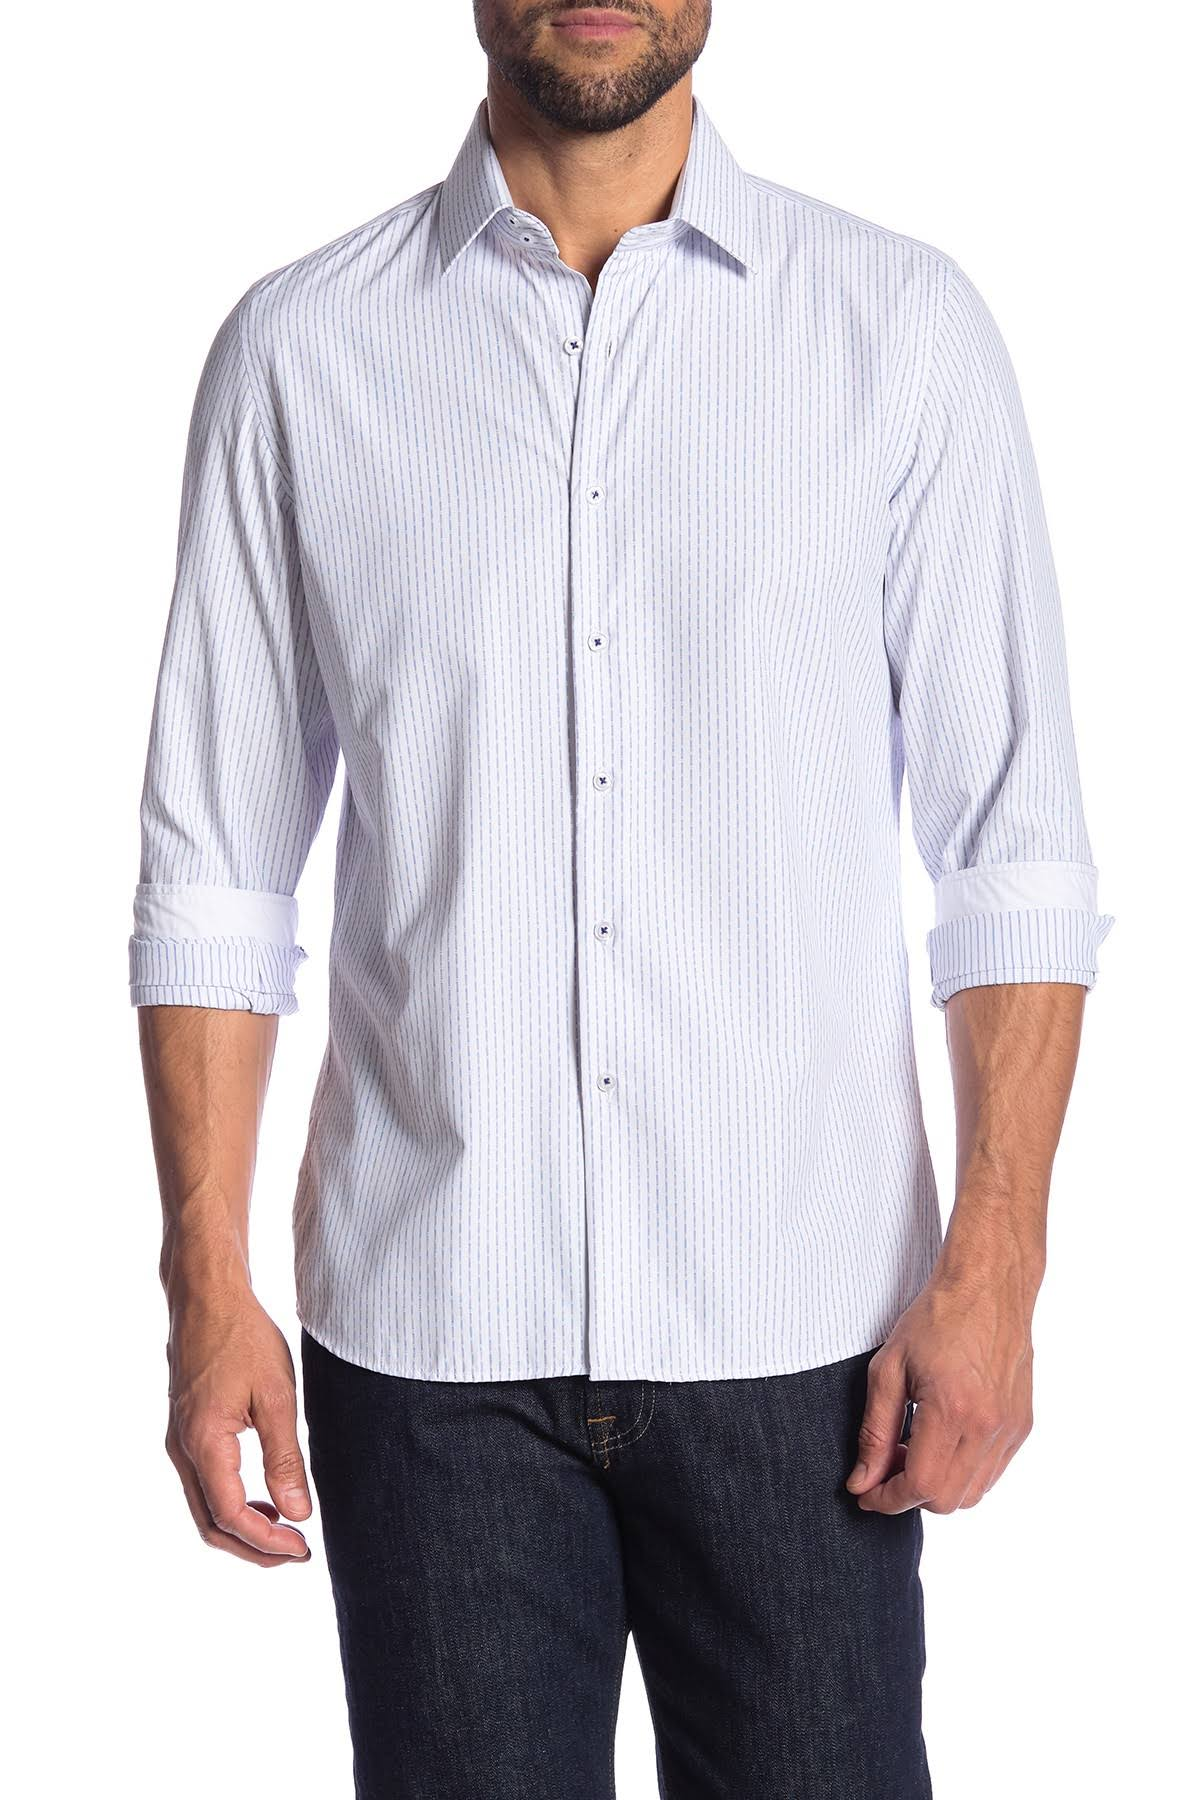 Fit Para Rosso Moderno Camiseta M Styles Milano Azul Modern Fashion Hombre Z1qqUXHS